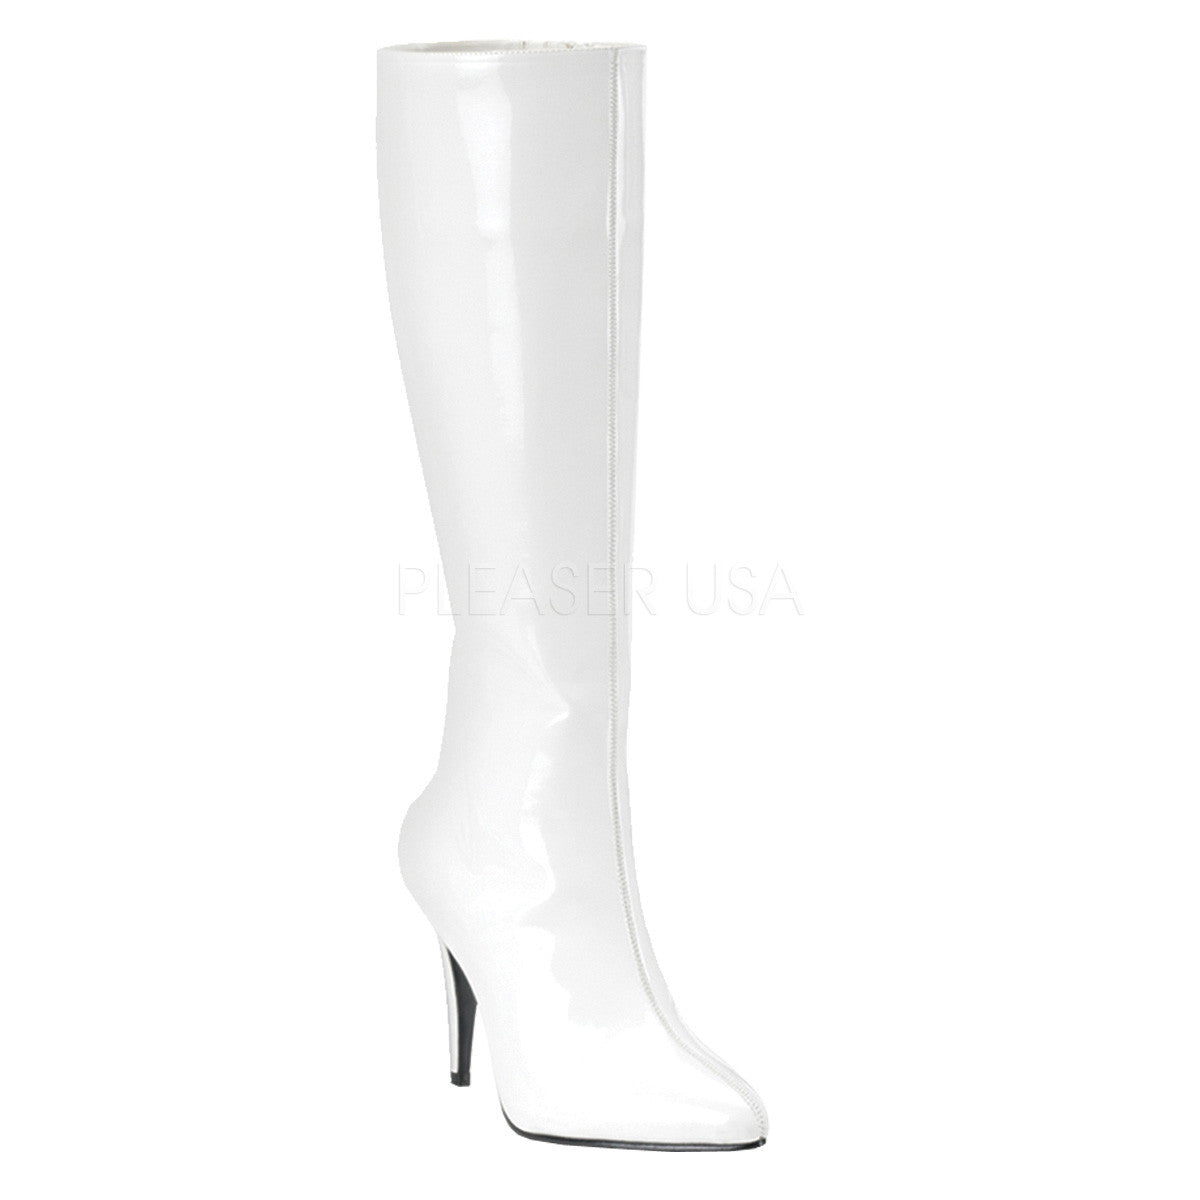 FUNTASMA LUST-2000 White Stretch Pat Knee High Boots - Shoecup.com